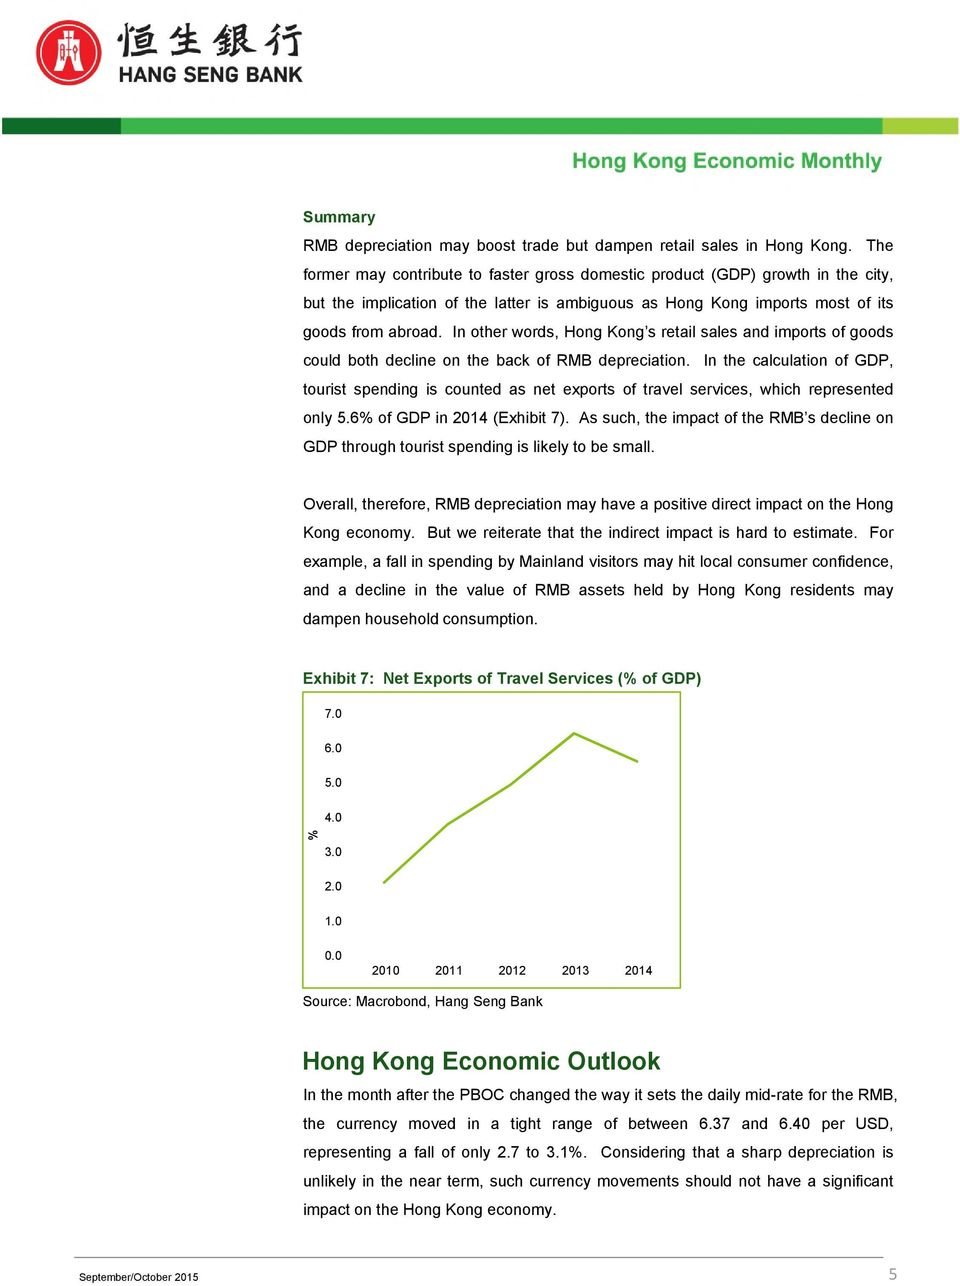 In other words, Hong Kong s retail sales and imports of goods could both decline on the back of RMB depreciation.